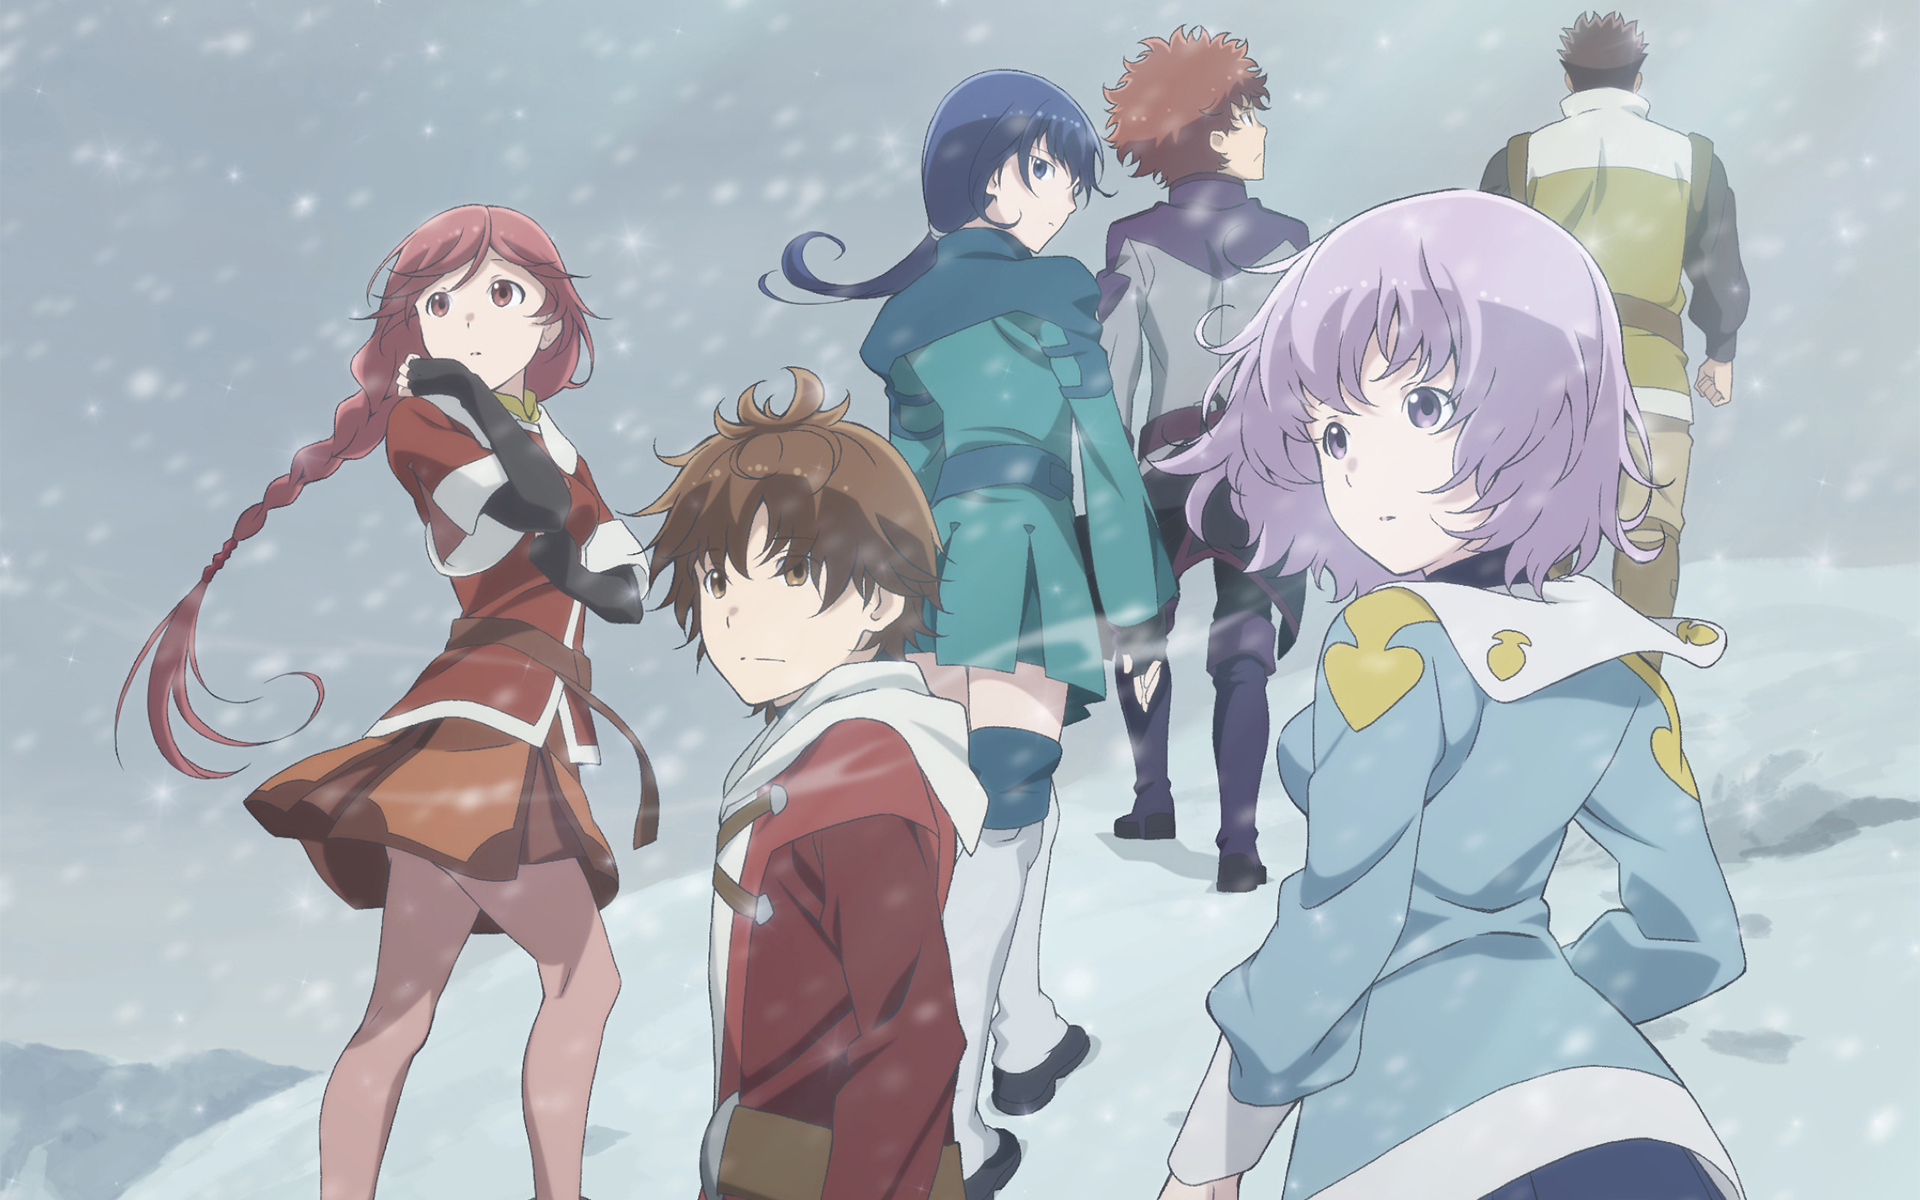 Anime Grimgar Of Fantasy And Ash Conclusion 8 10 Anime